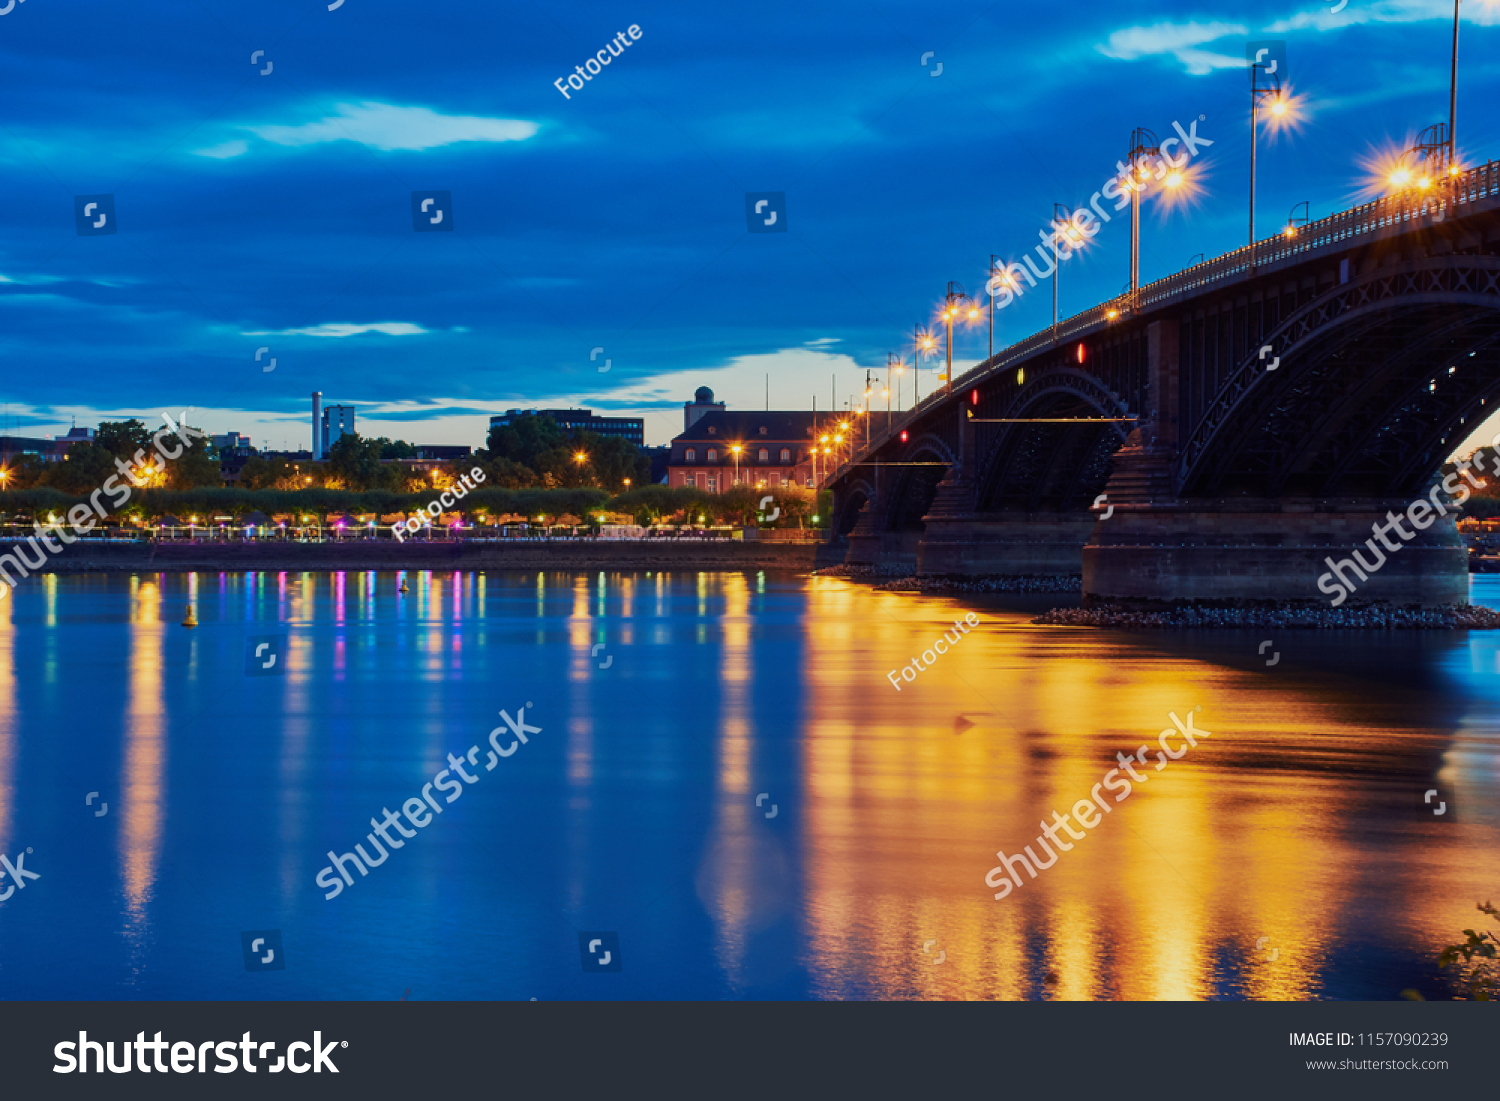 The famous Theodor-Heuss bridge in Mainz, Rhineland-Palatinate, the connection between Mainz and Wiesbaden in the blue hour with water reflection